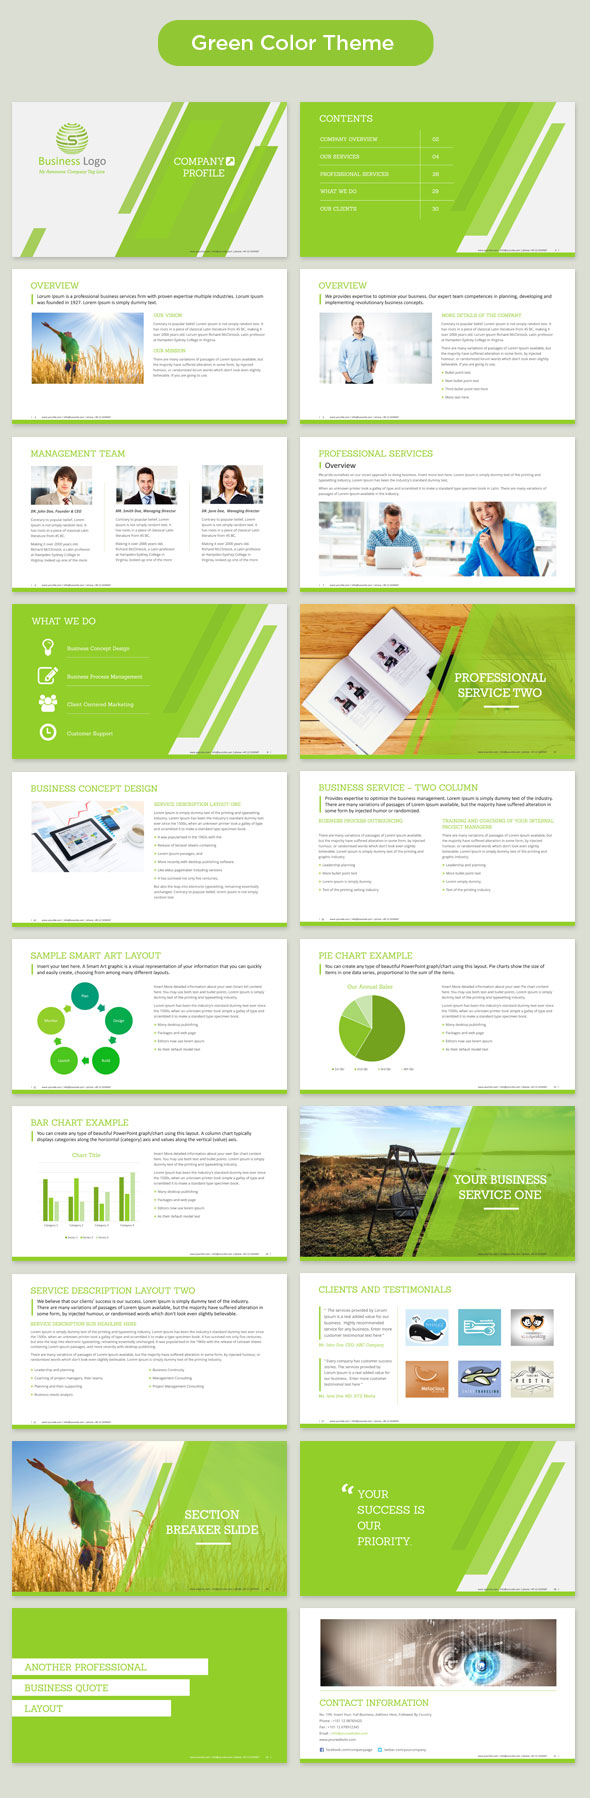 Free company profiles template vatozozdevelopment free company profiles template friedricerecipe Image collections